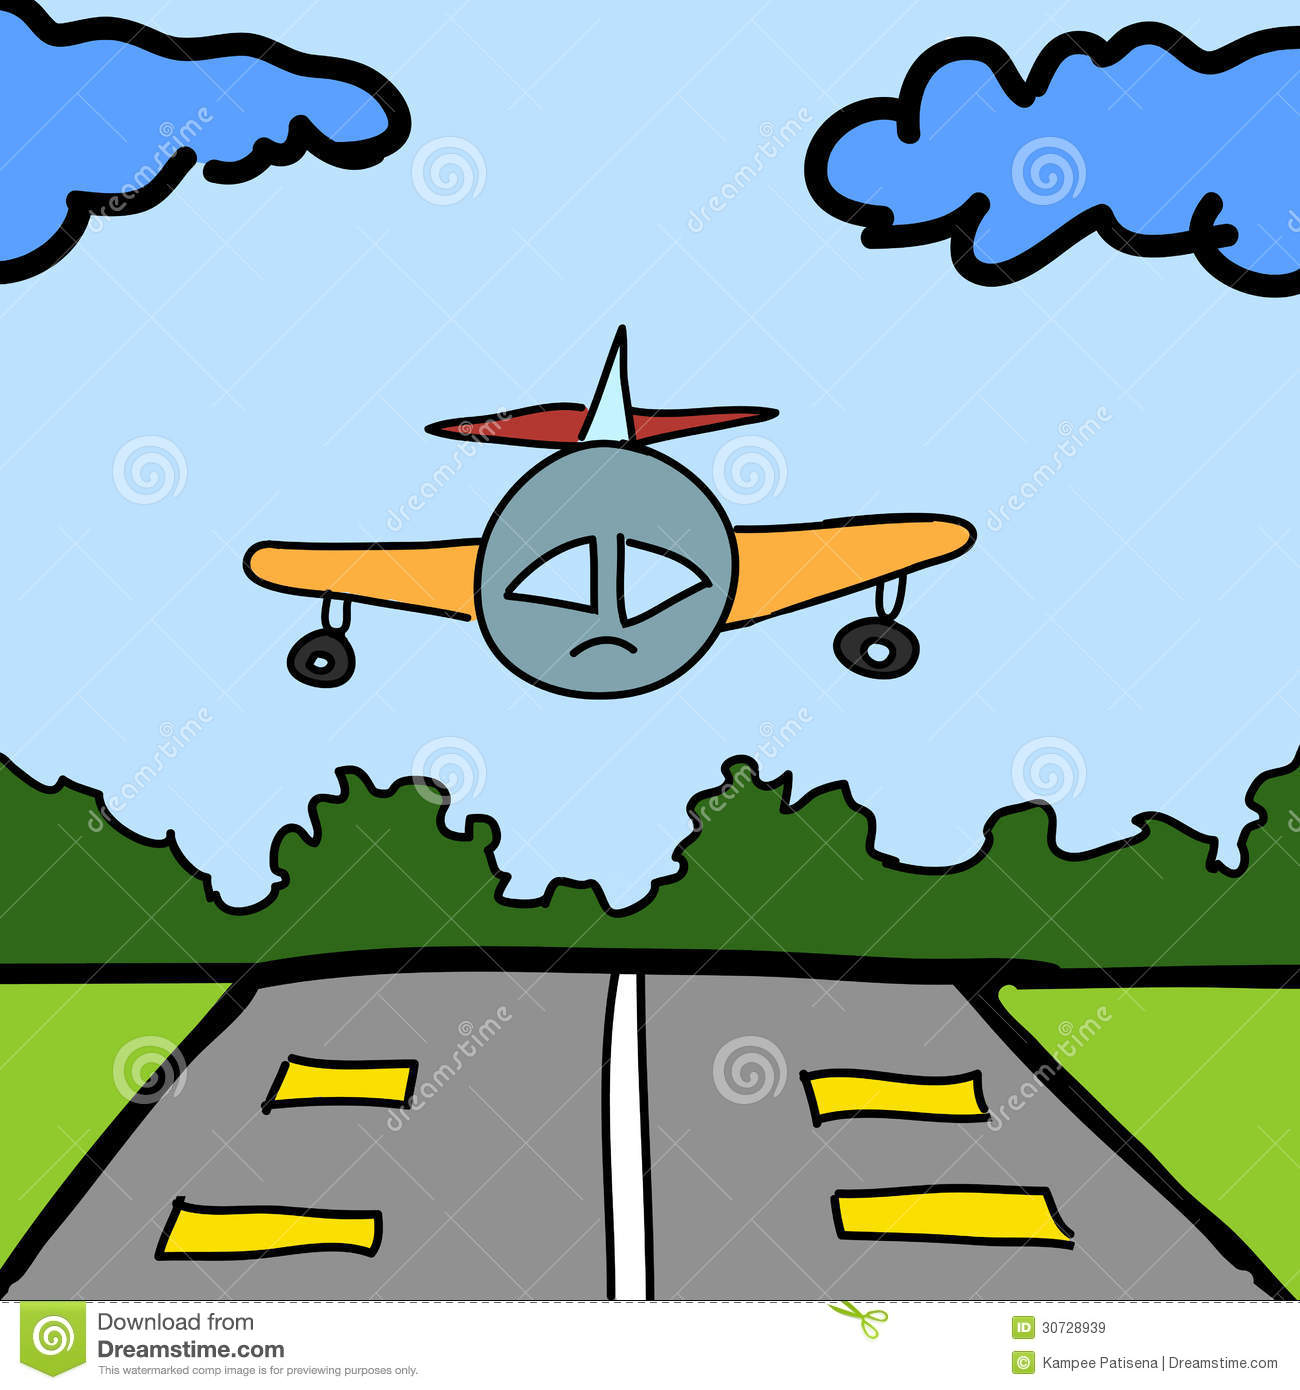 14 Airport Fueling Areal Cartoon Icon Images - Cartoon ...